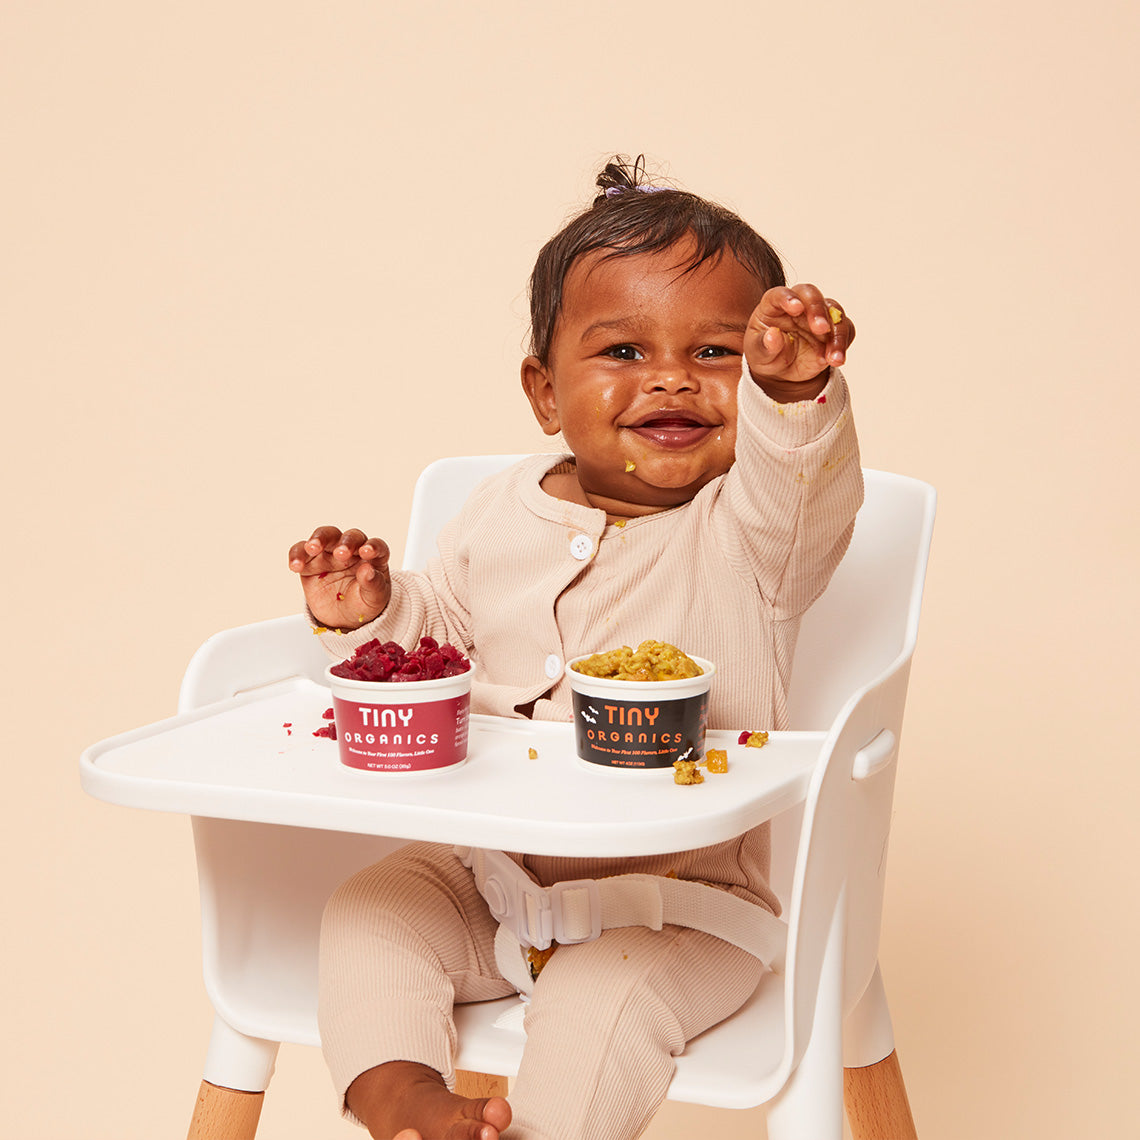 Baby on high chair with oatmeal